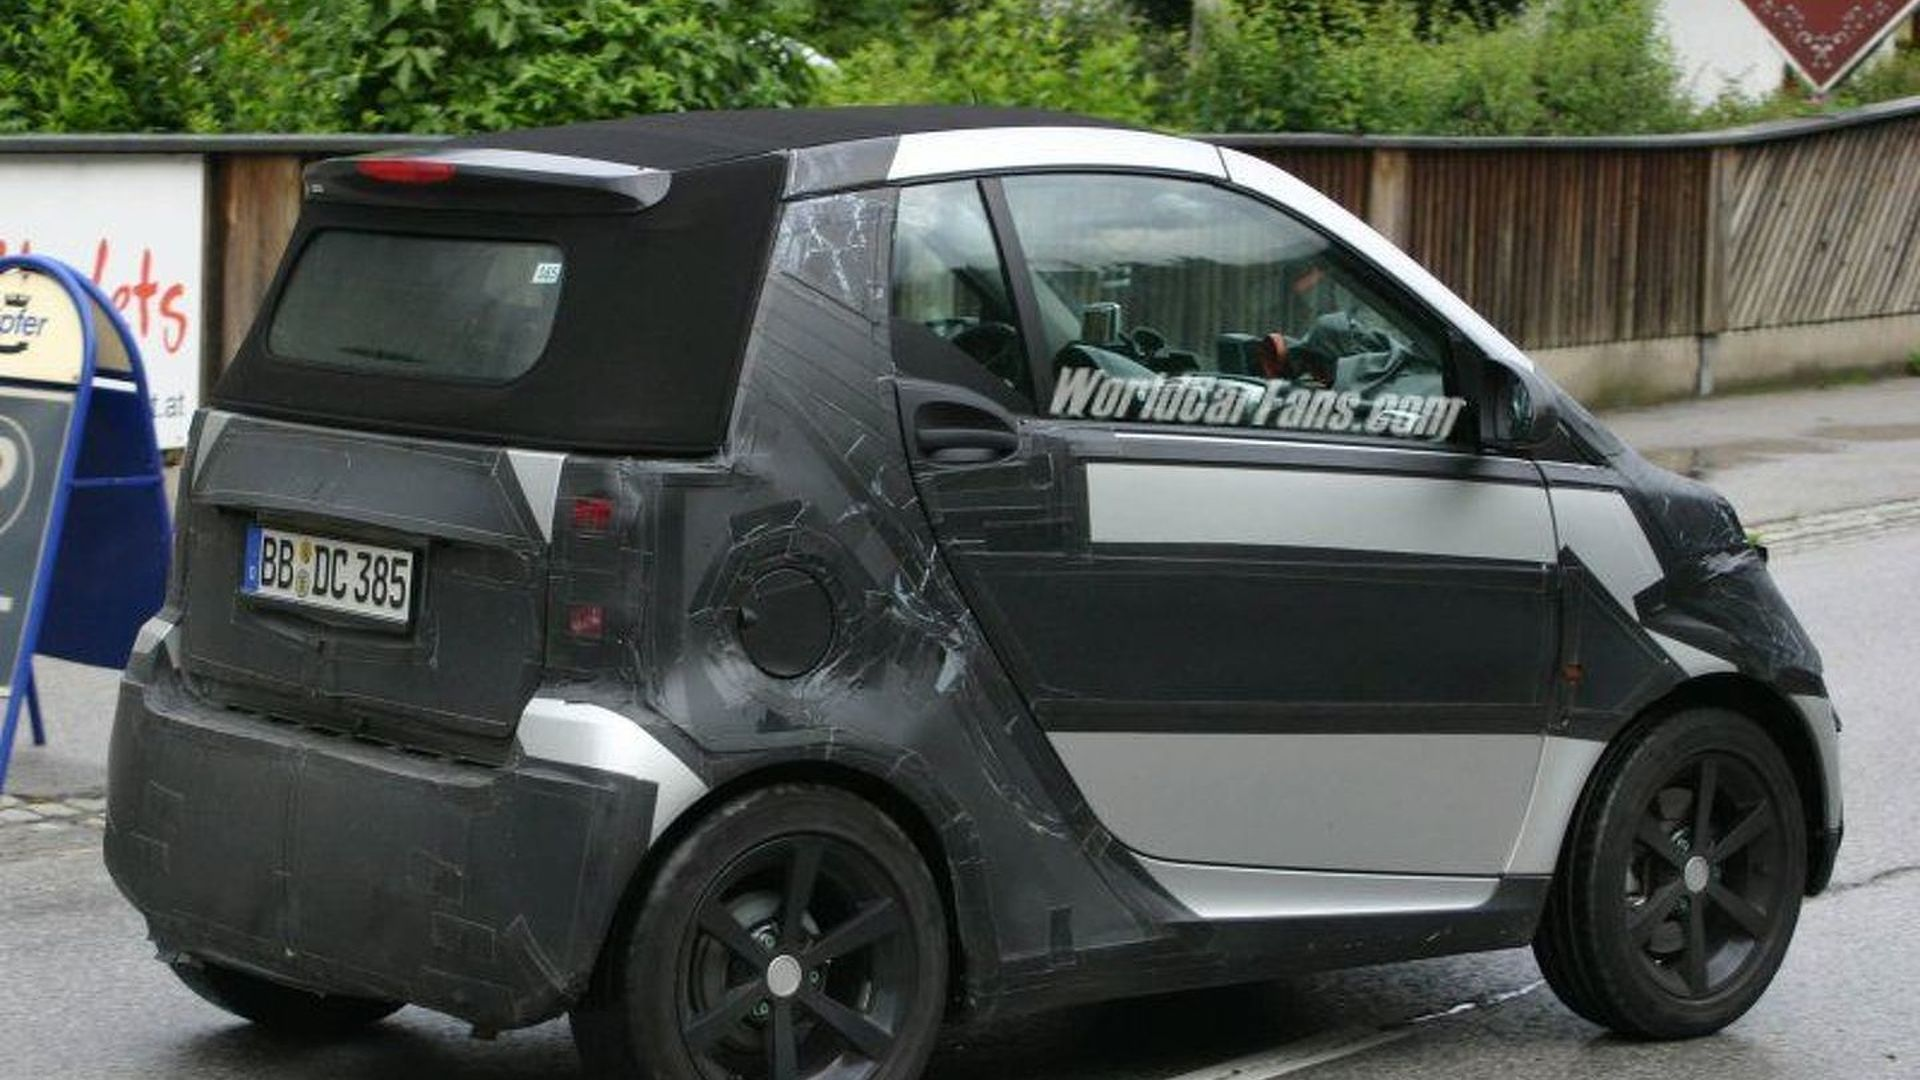 SPY PHOTOS: More Next Gen smart ForTwo